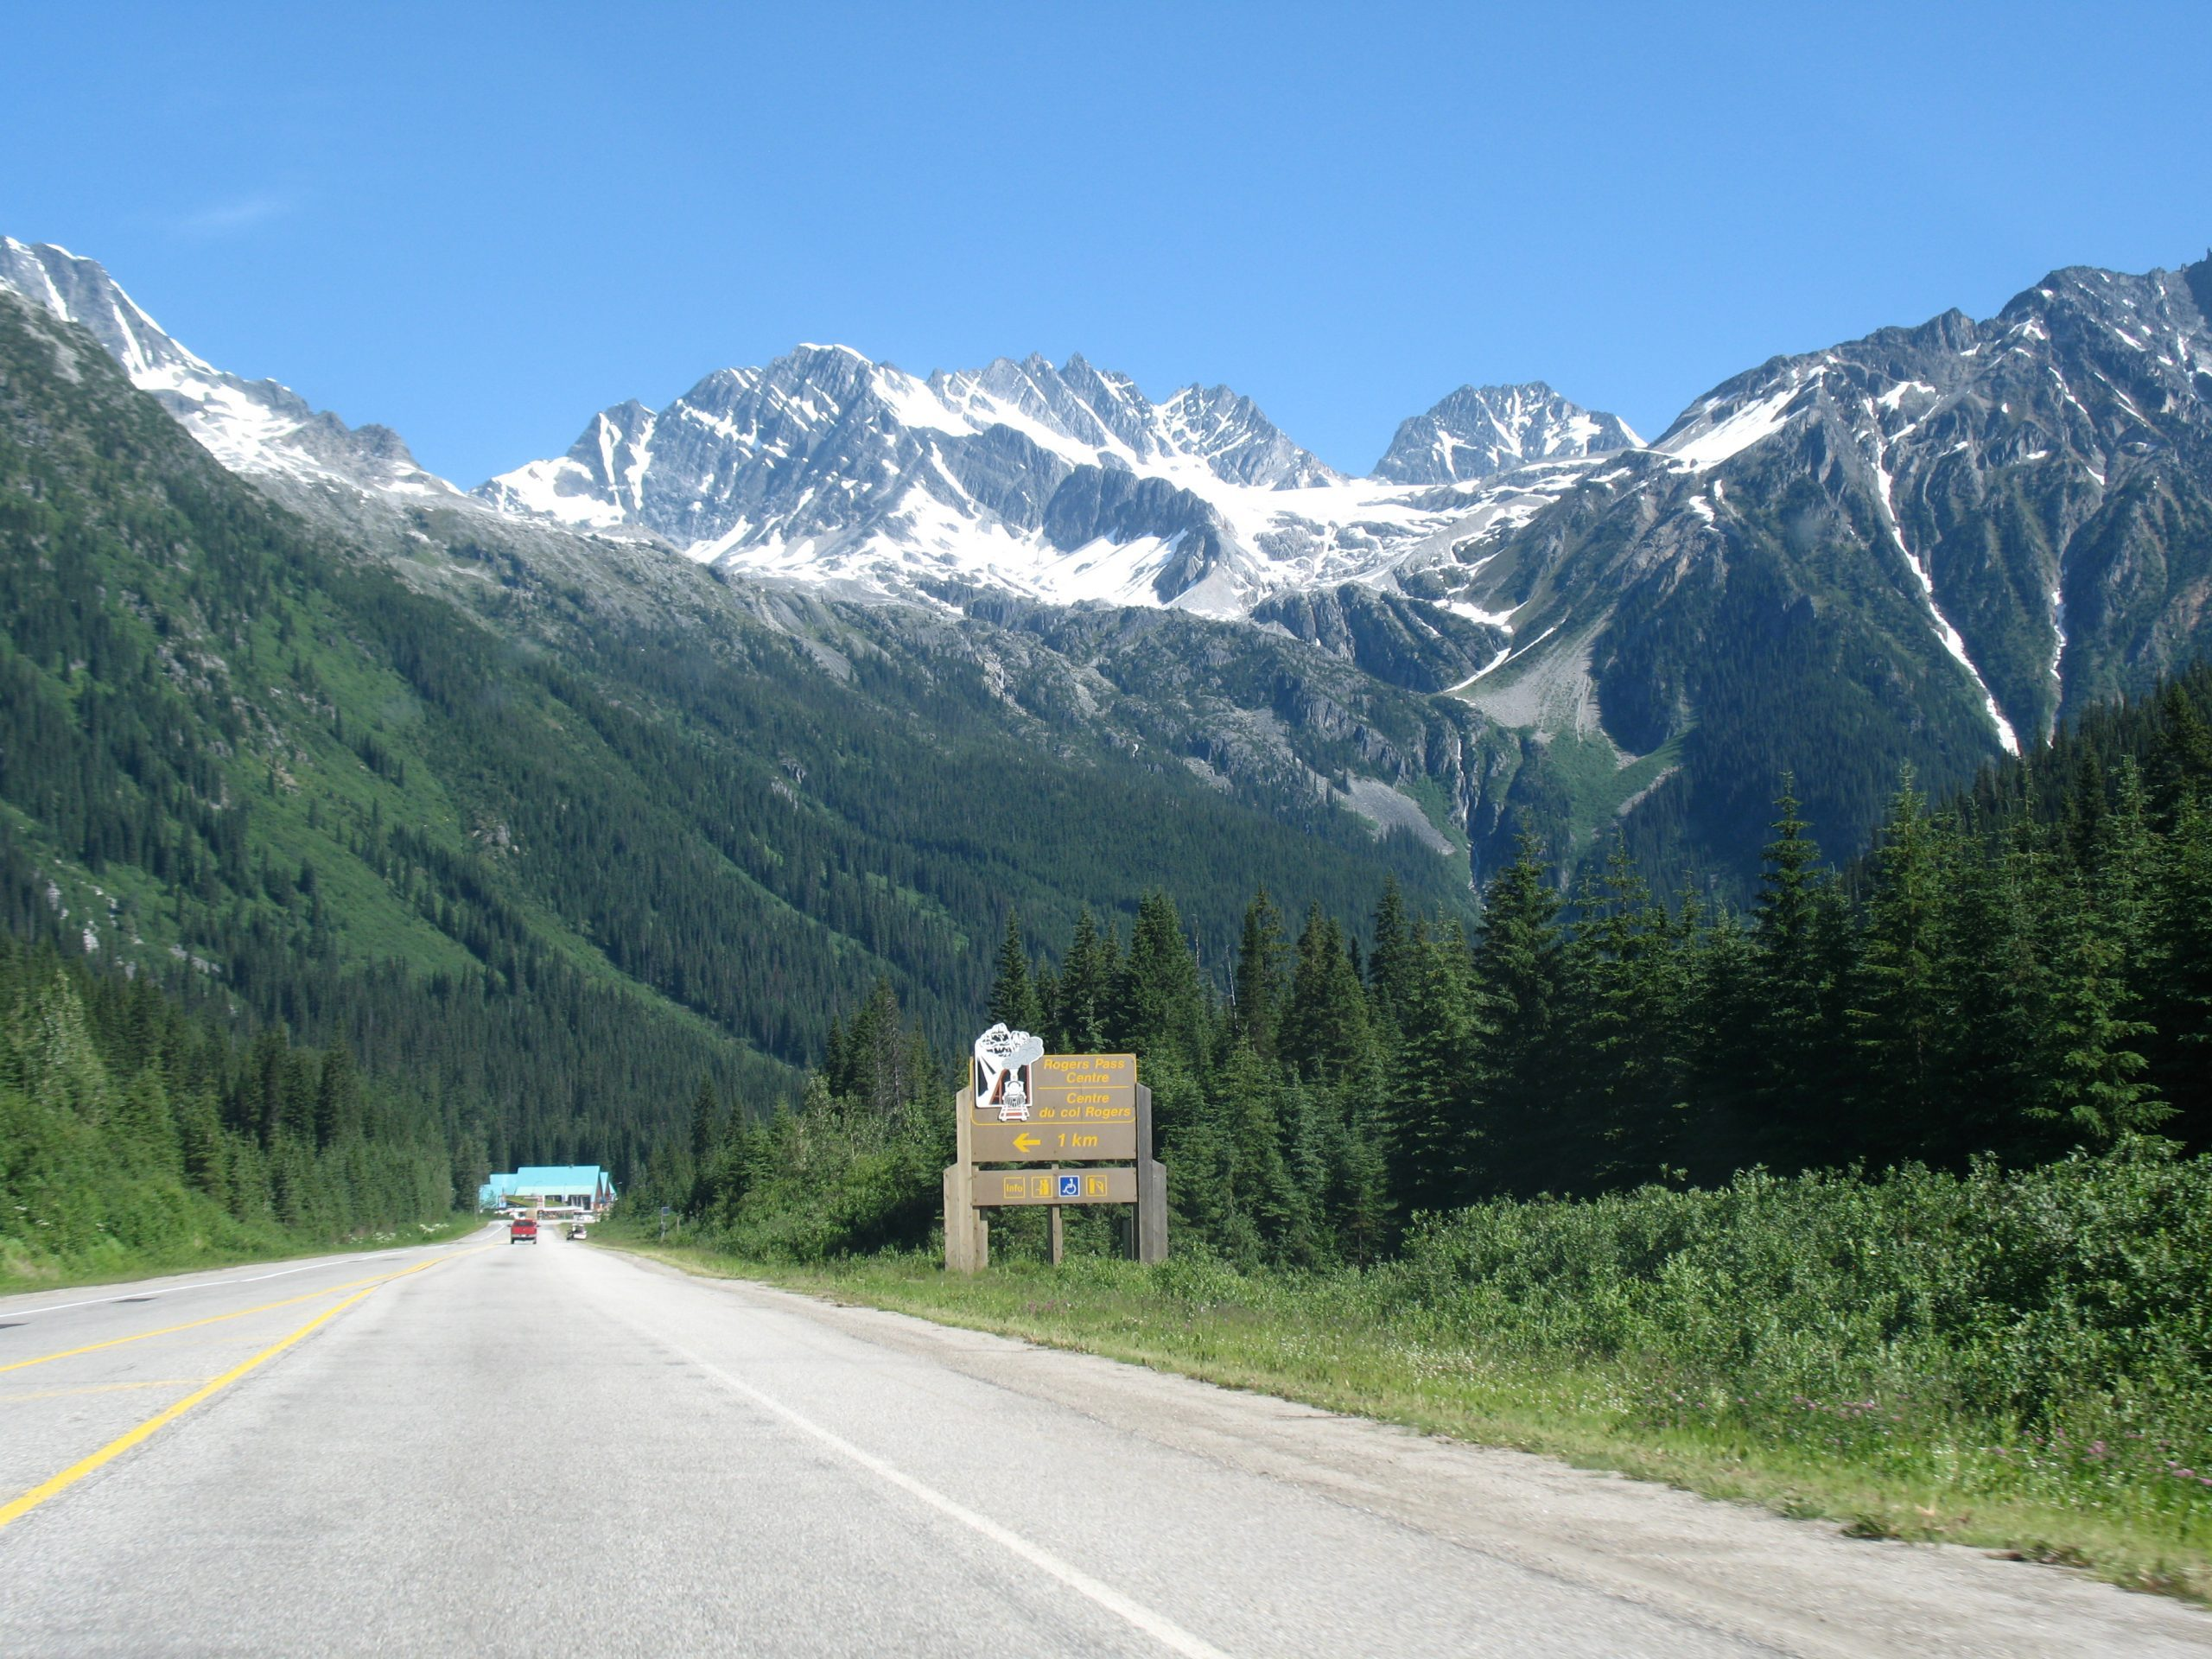 Rogers Pass-Summit Sign With Mountains